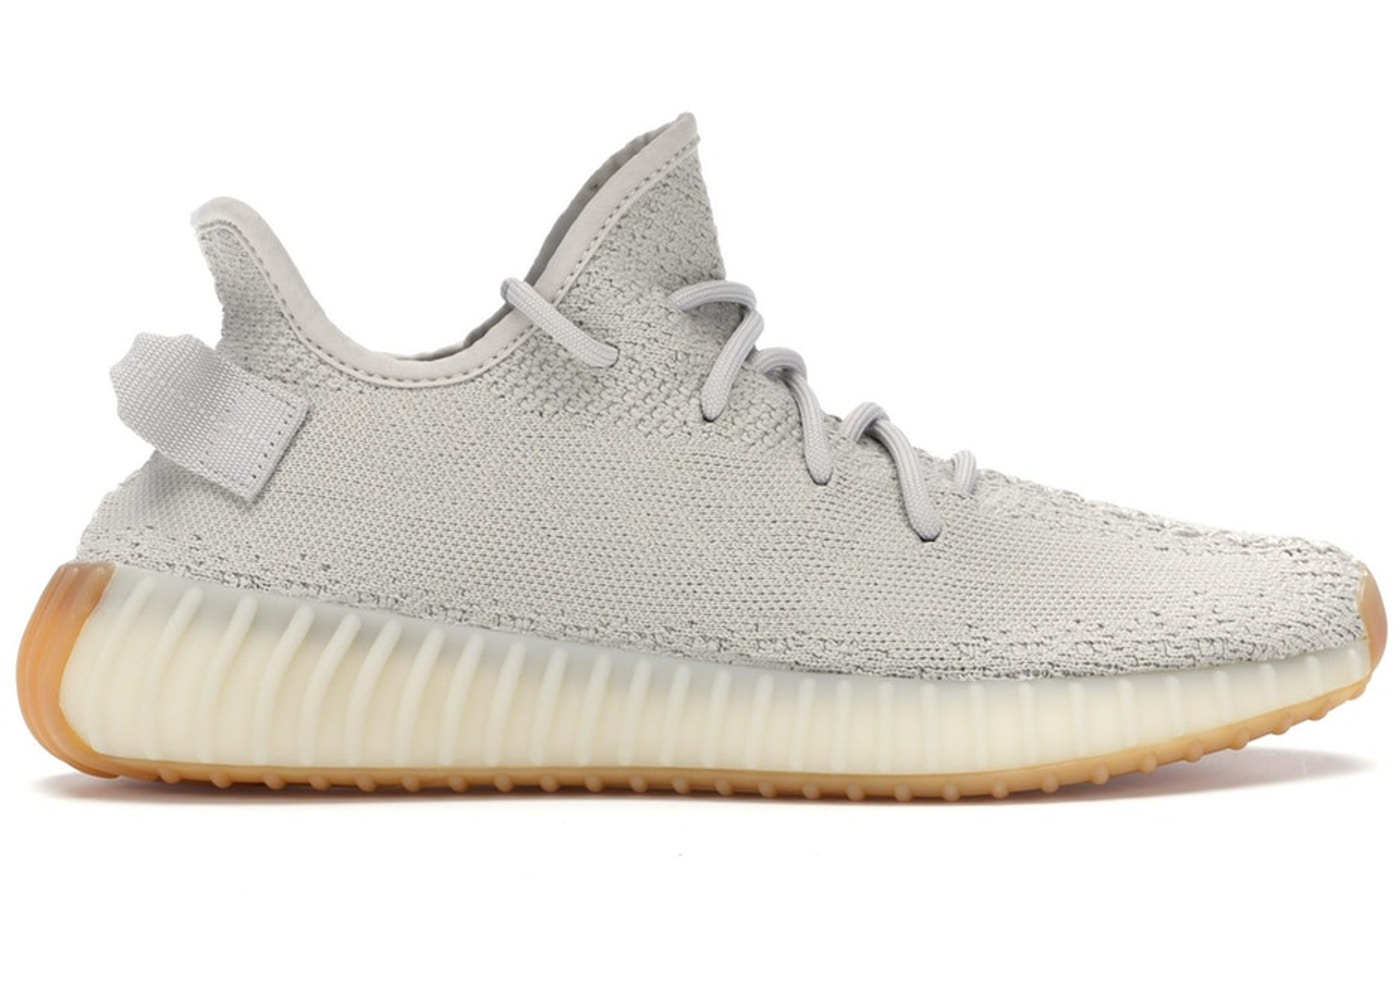 reputable site d2db1 5286d adidas Yeezy Boost 350 V2 Sesame